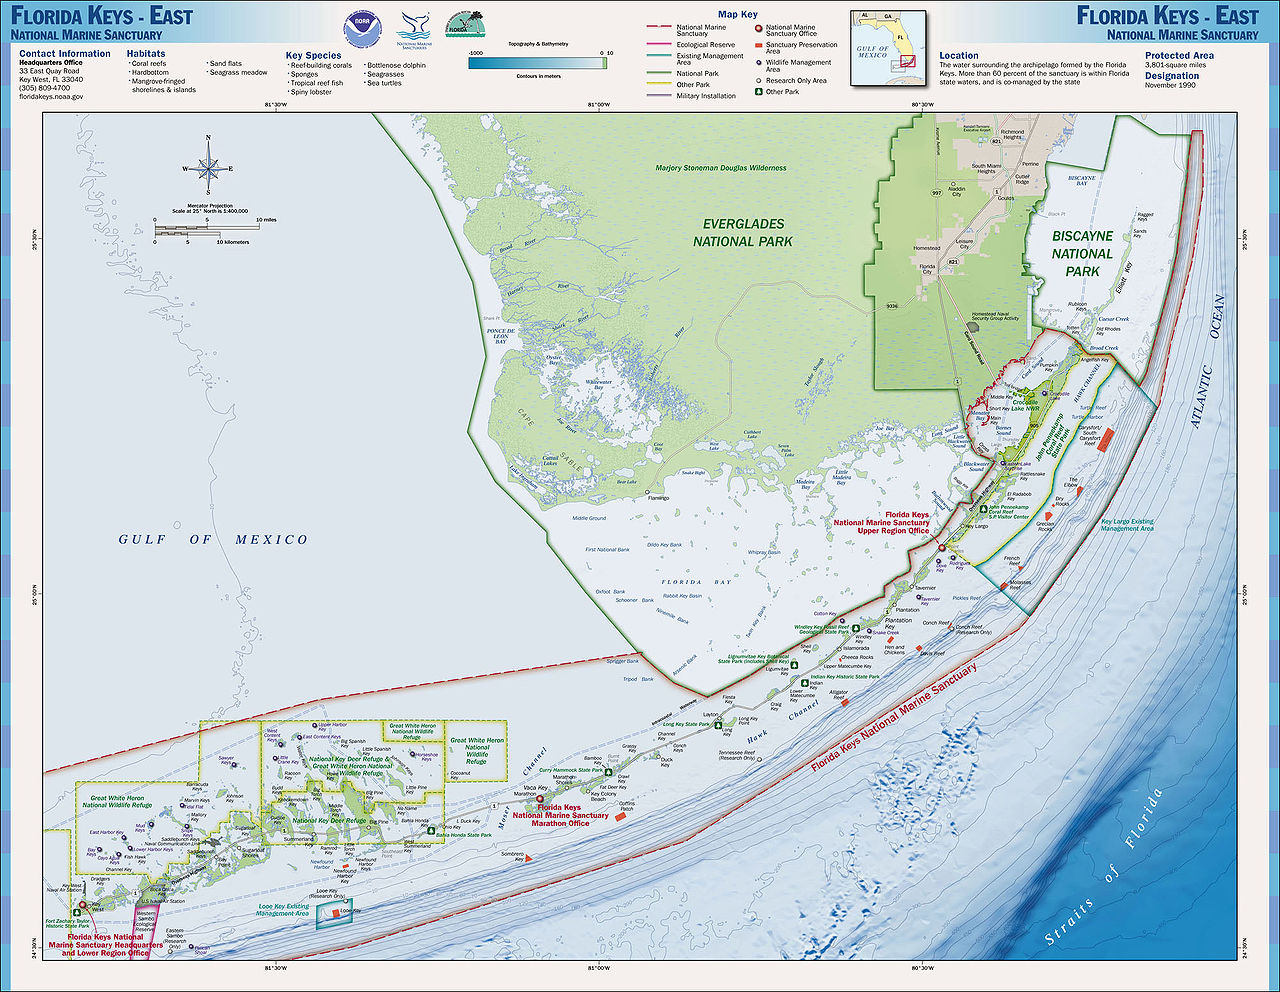 Charts And Maps Florida Keys - Florida Go Fishing - South Florida Fishing Maps